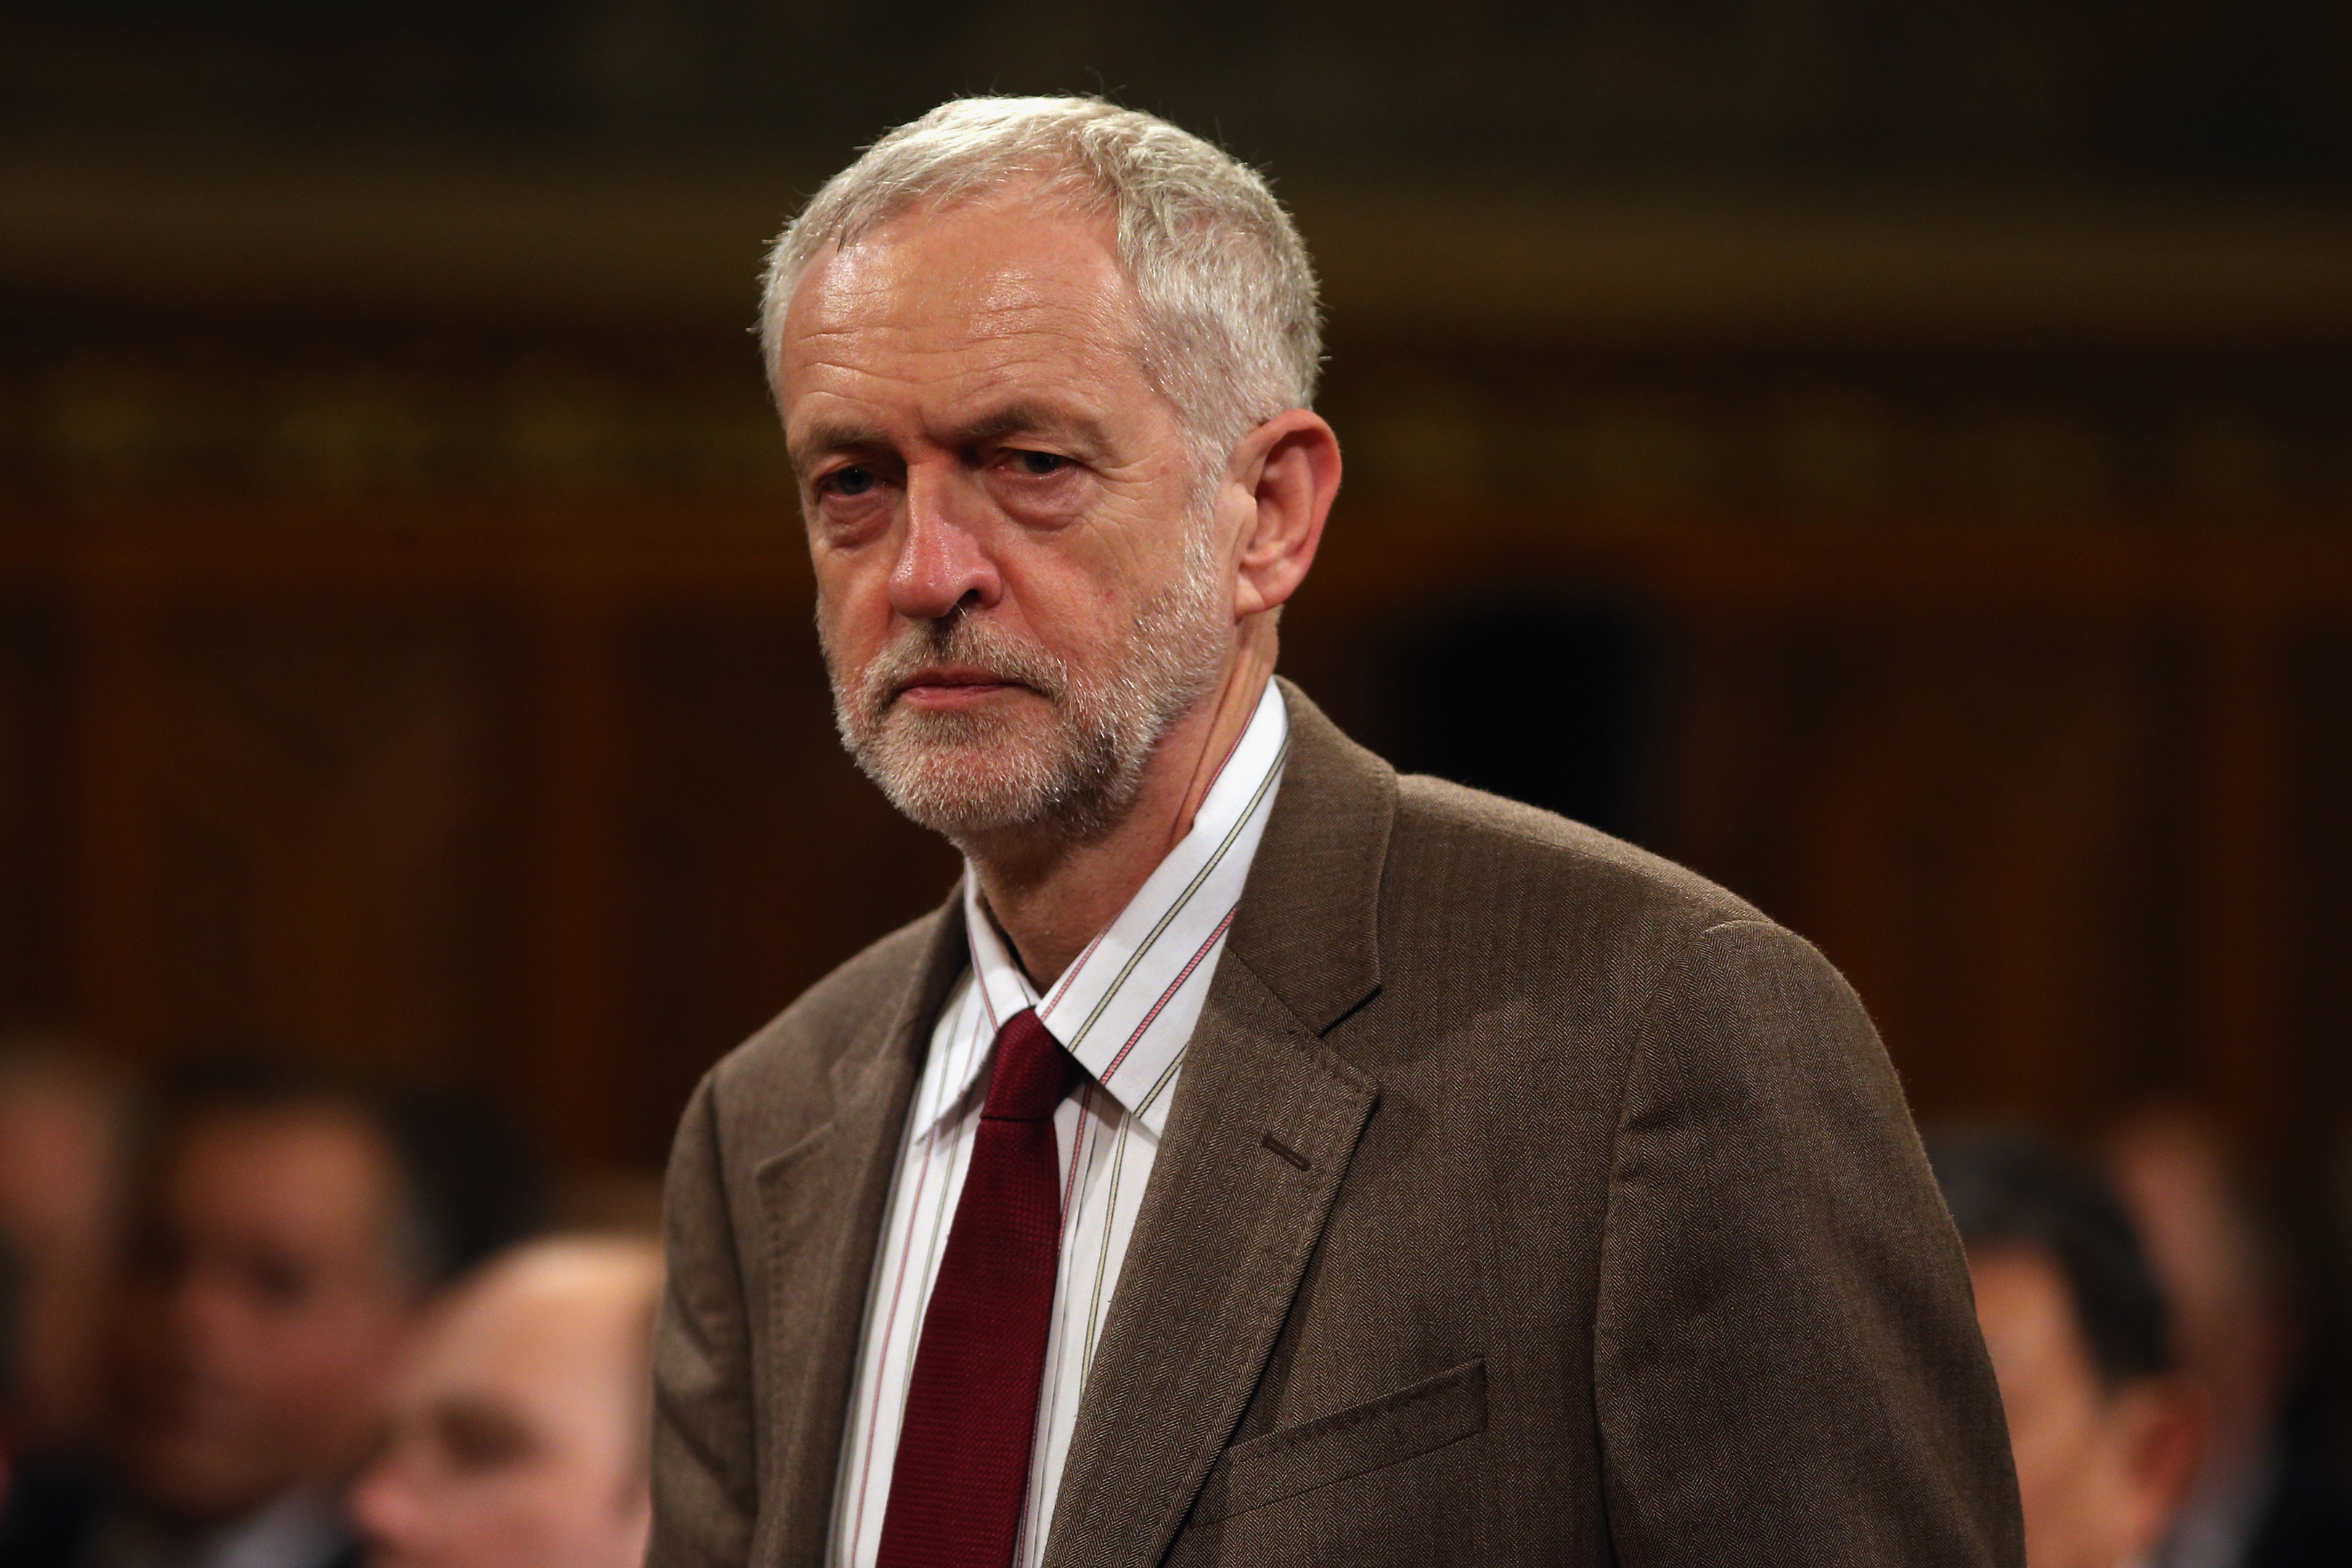 Labour leader Jeremy Corbyn (Dan Kitwood - WPA Pool /Getty Images)